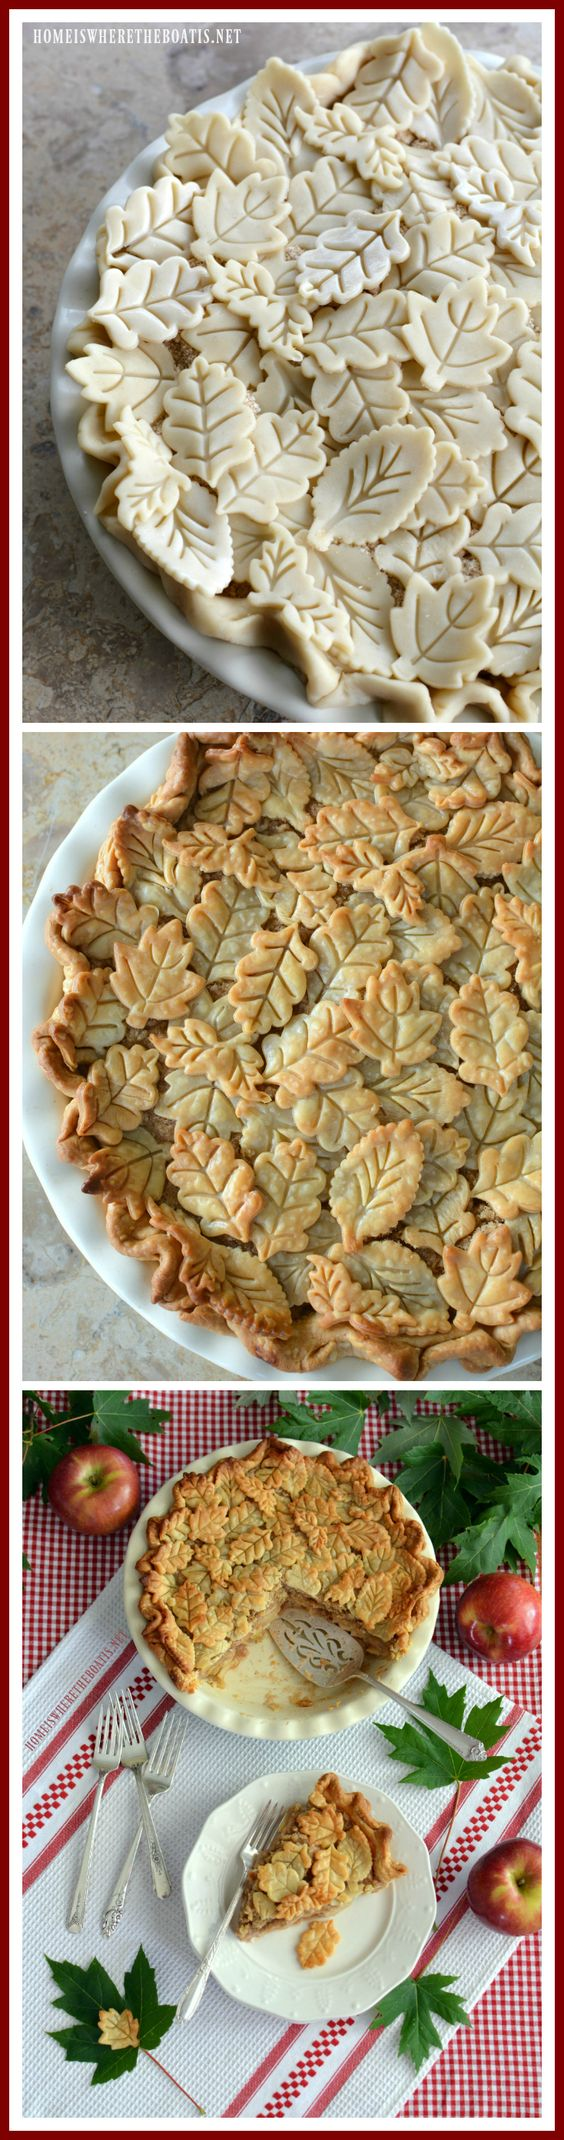 Double-Topped Apple Pie with Crumb Topping and Pie Crust Leaves